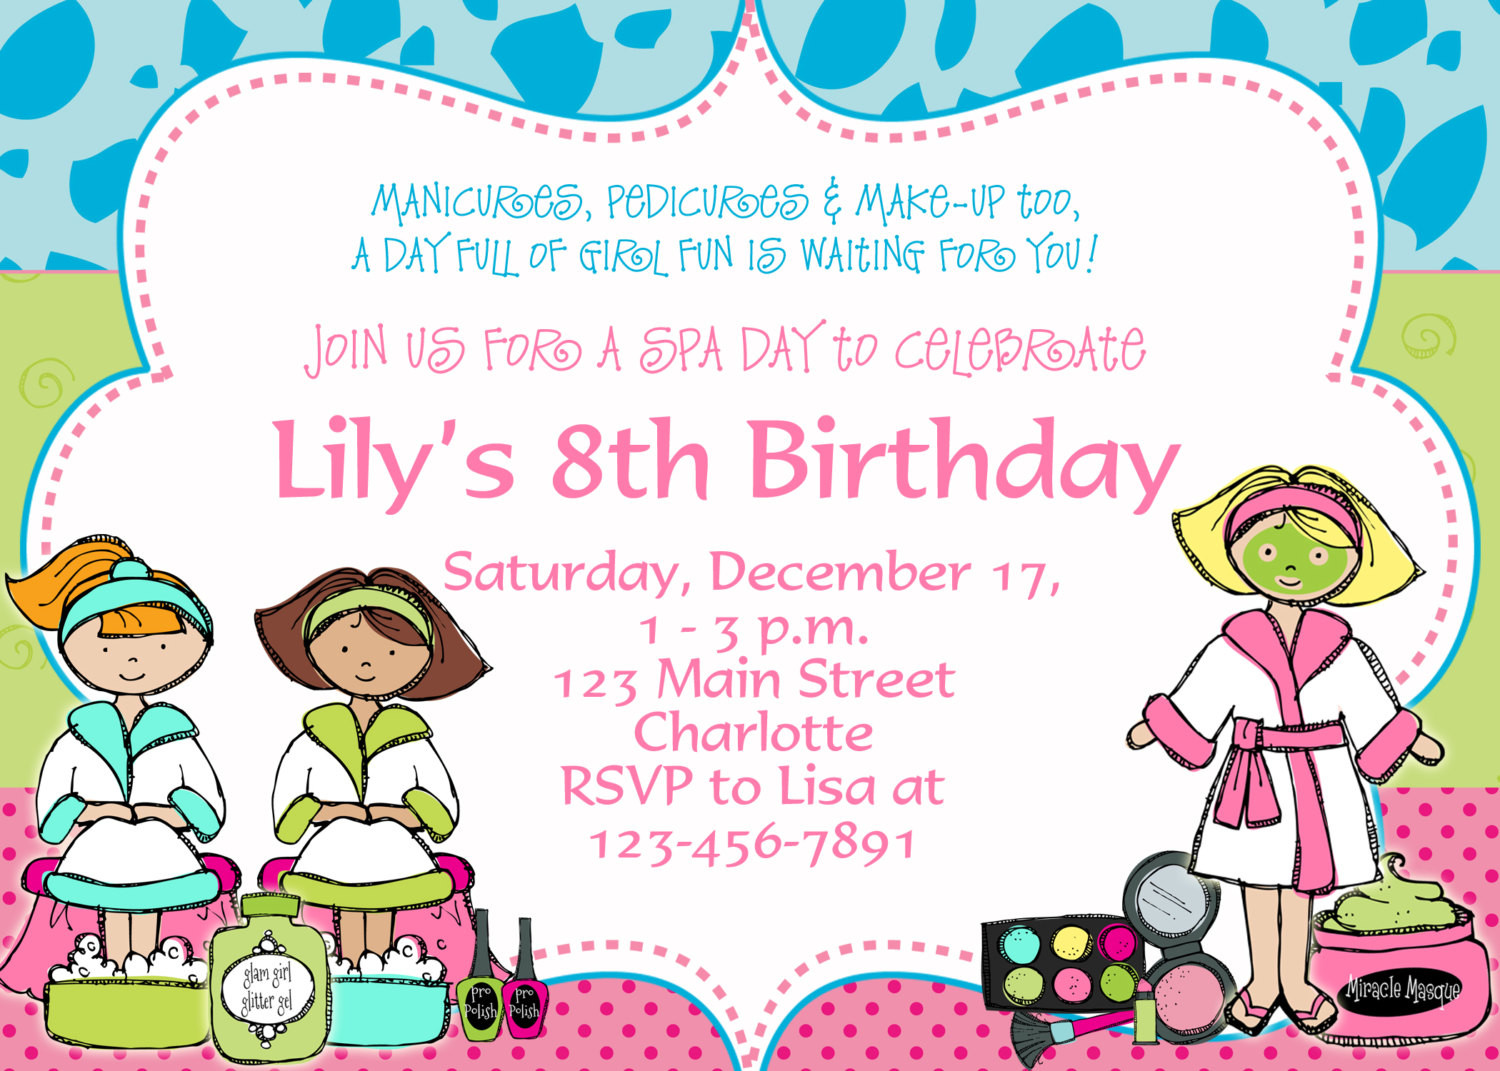 Best ideas about Birthday Party Invitation Template . Save or Pin Free Birthday Party Invitation Templates Now.